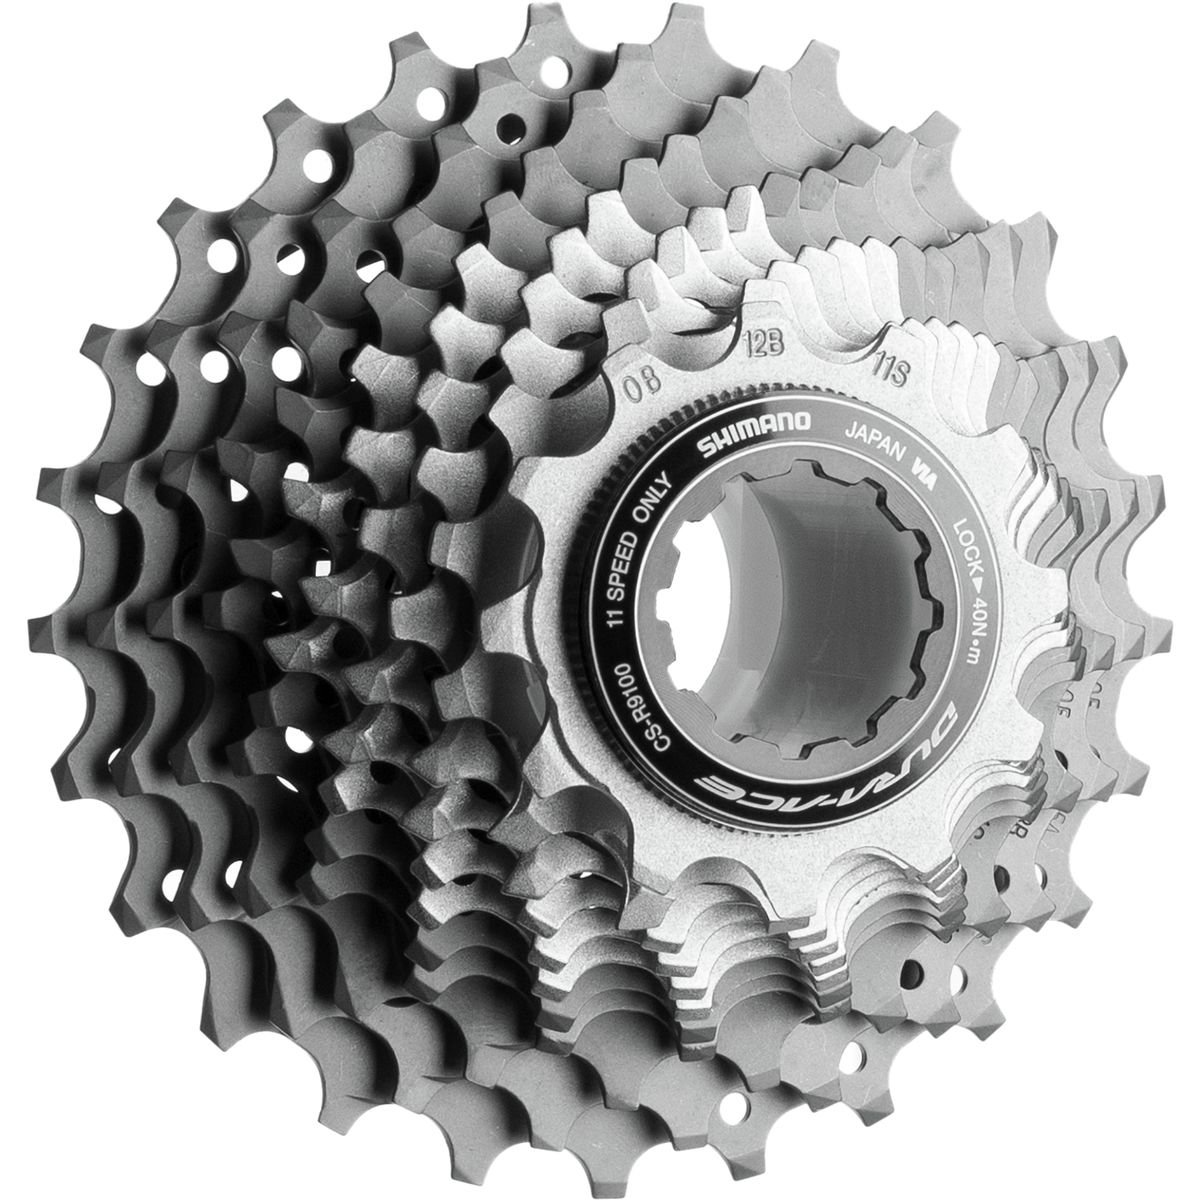 SHIMANO Dura-Ace CS-R9100 11-Speed Cassette One Color, 11-28 by SHIMANO